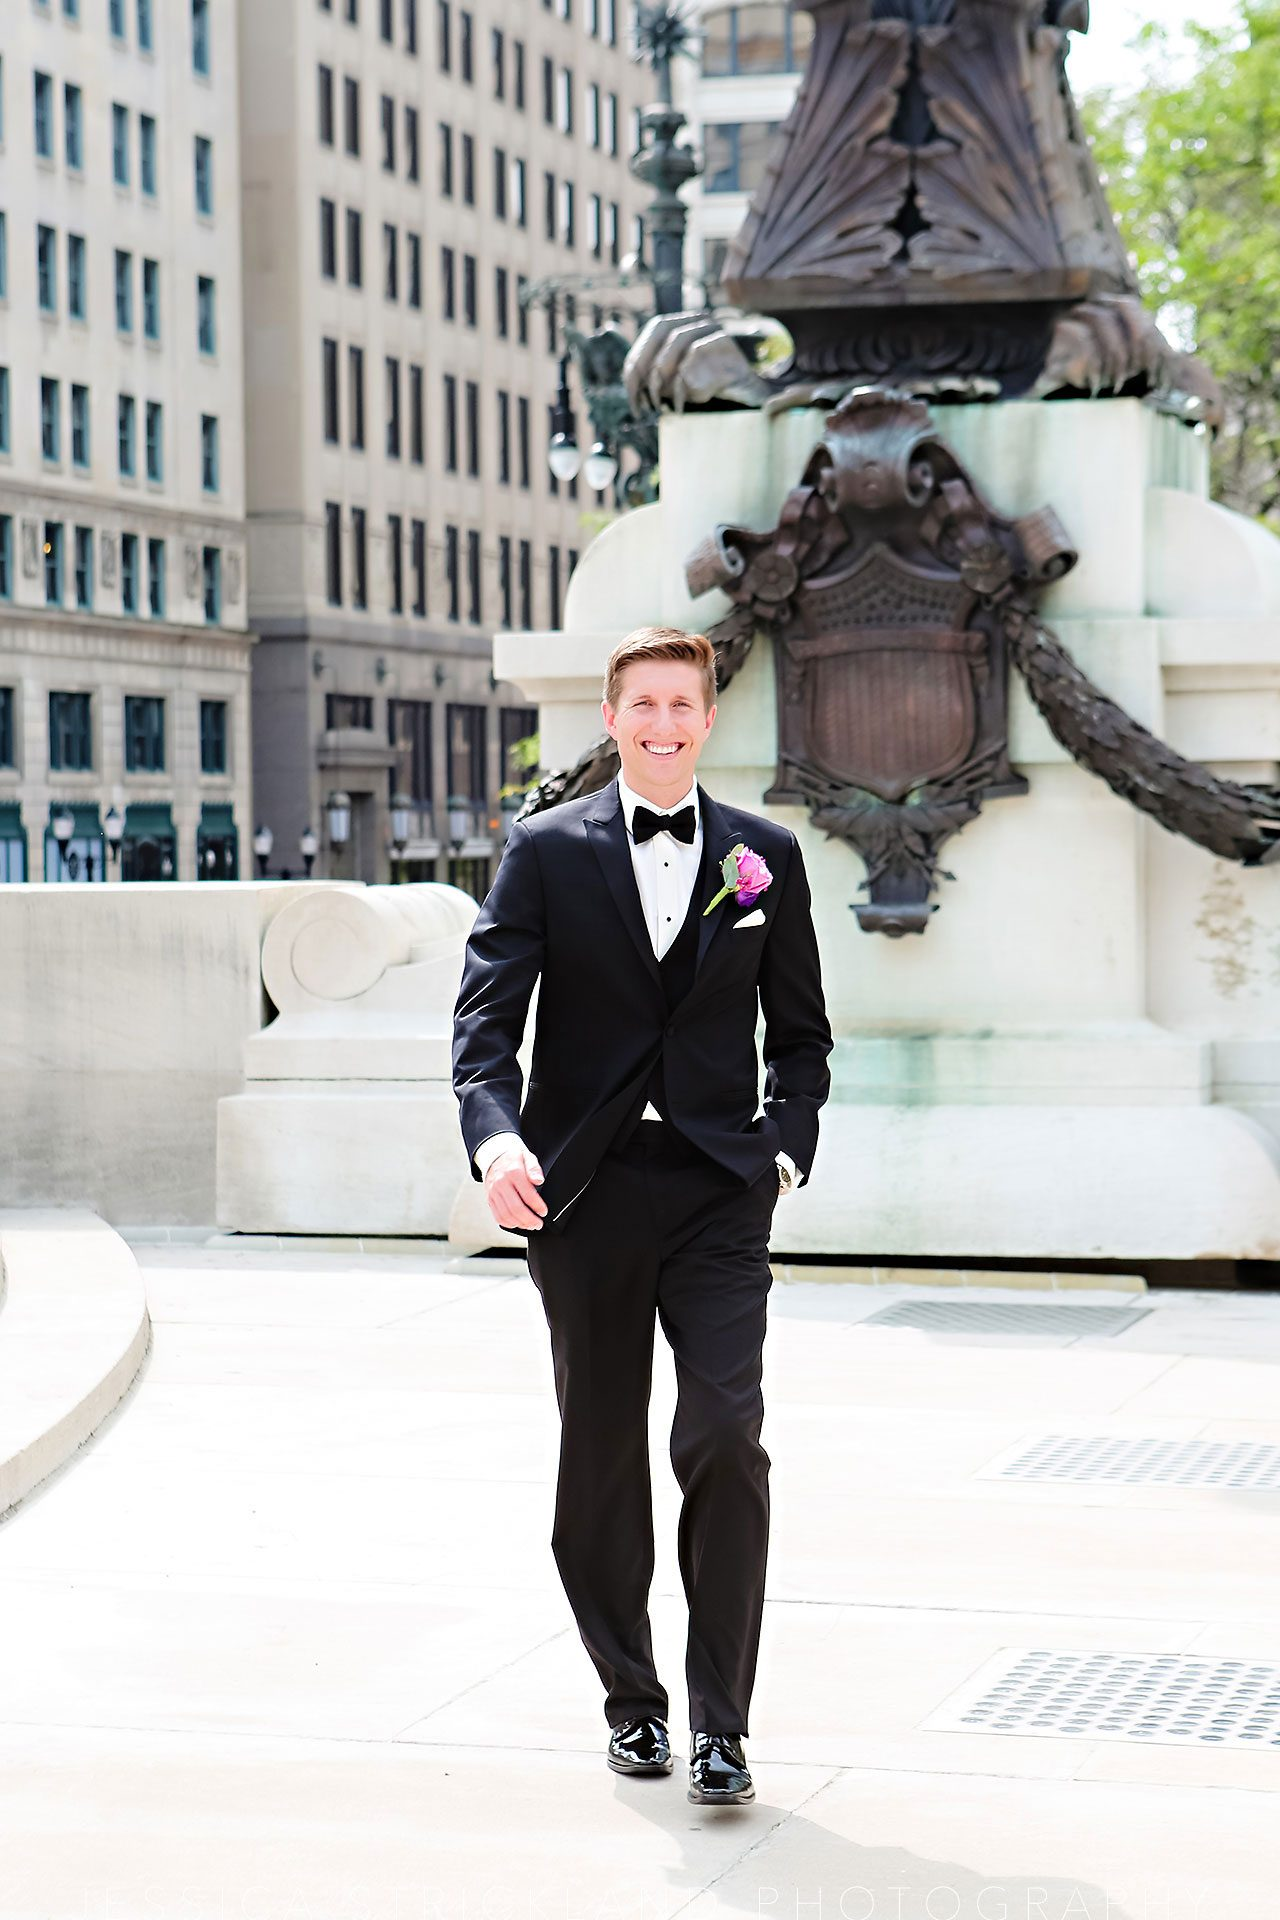 Serra Alex Regions Tower Indianapolis Wedding 074 watermarked